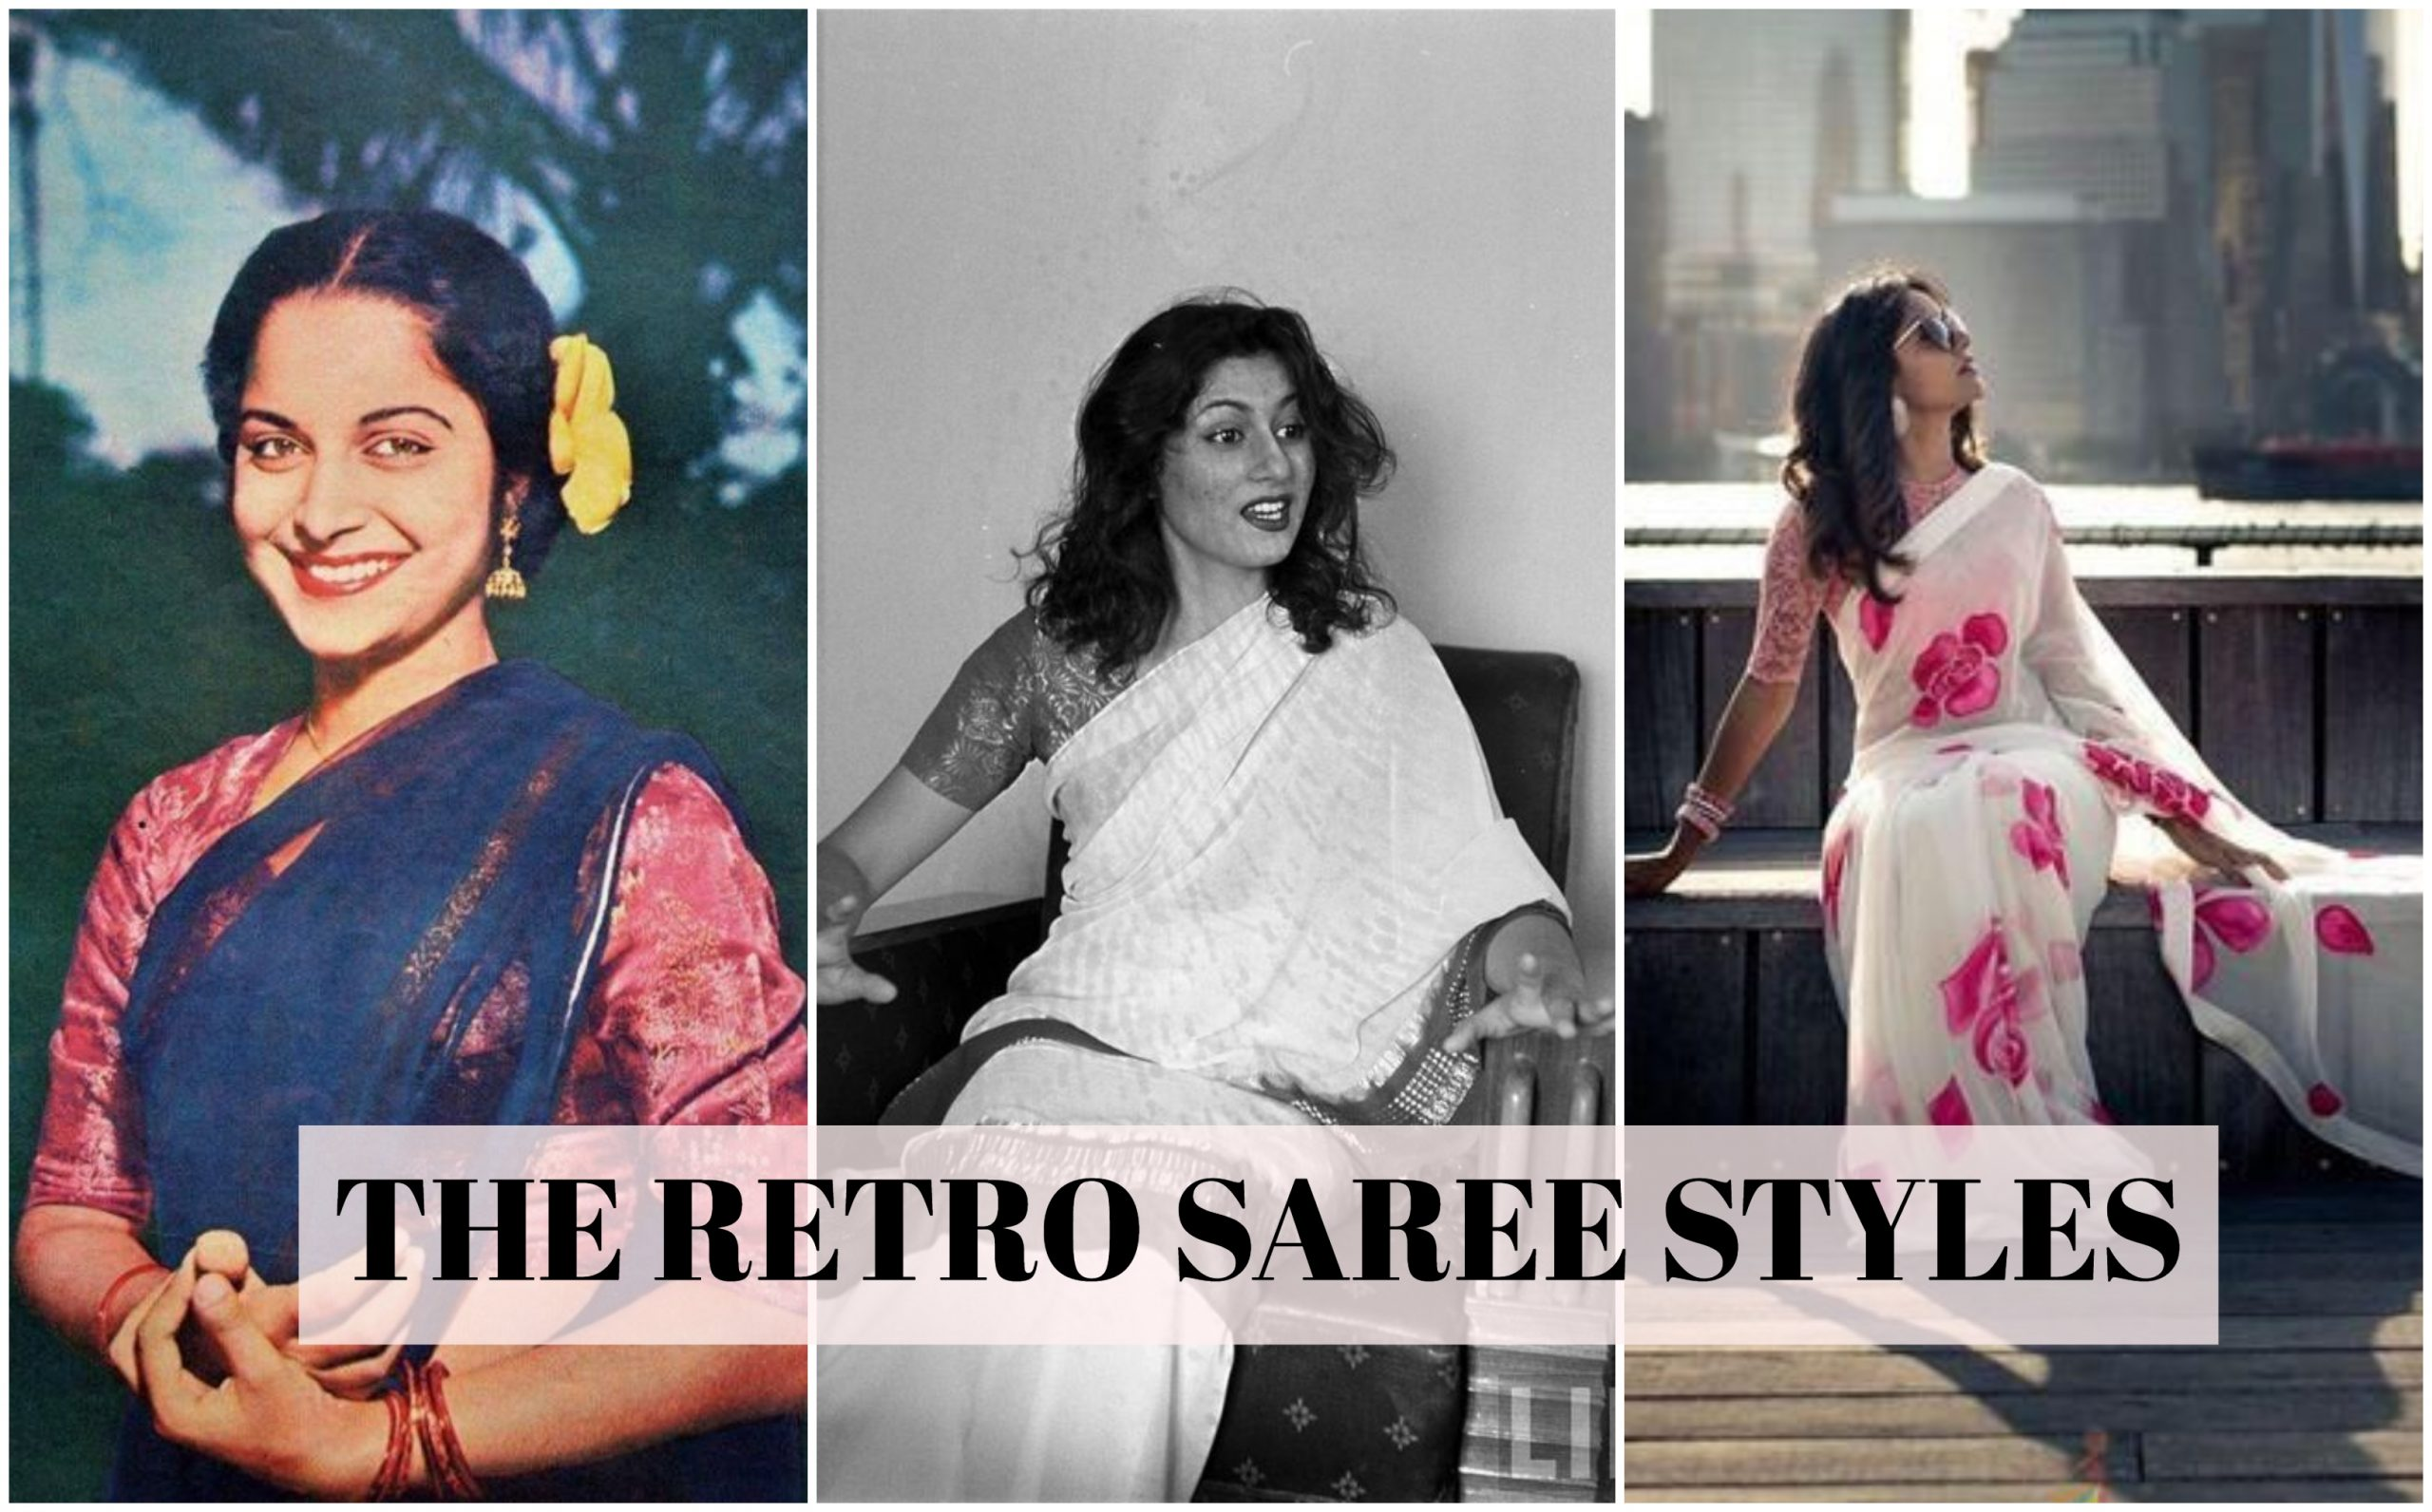 Types of Retro Saree Style that Trend – Peshwas, Mumtaz, Traditional Styles